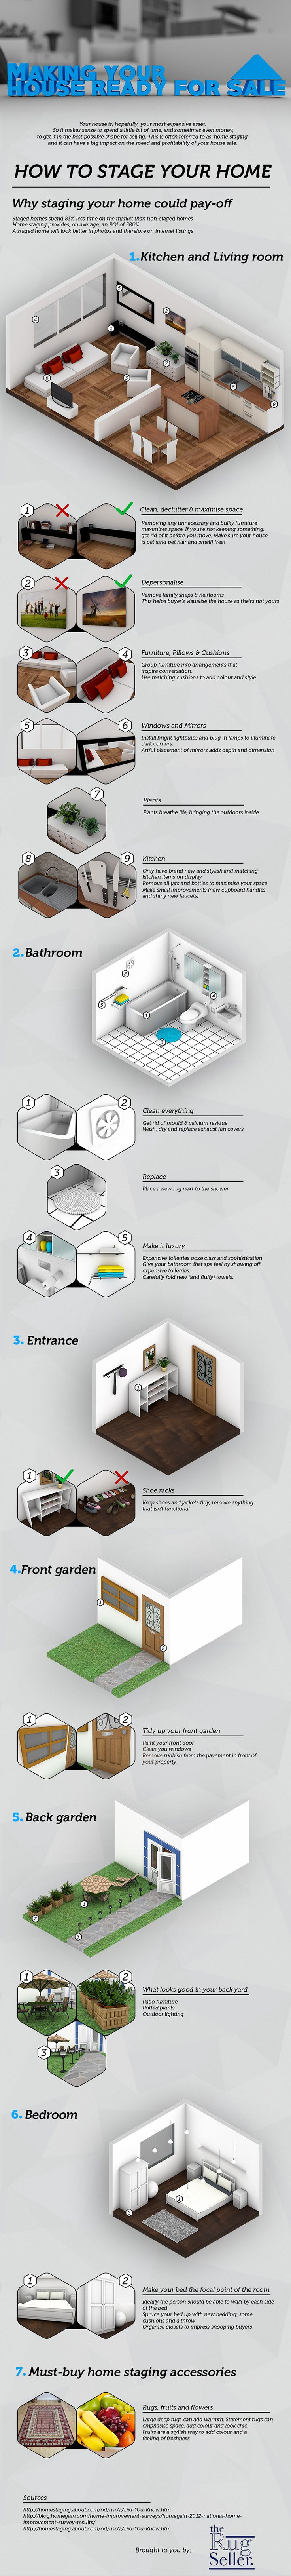 25 Best Ideas About Home Staging On Pinterest House Staging Ideas Staging And Home Staging Tips